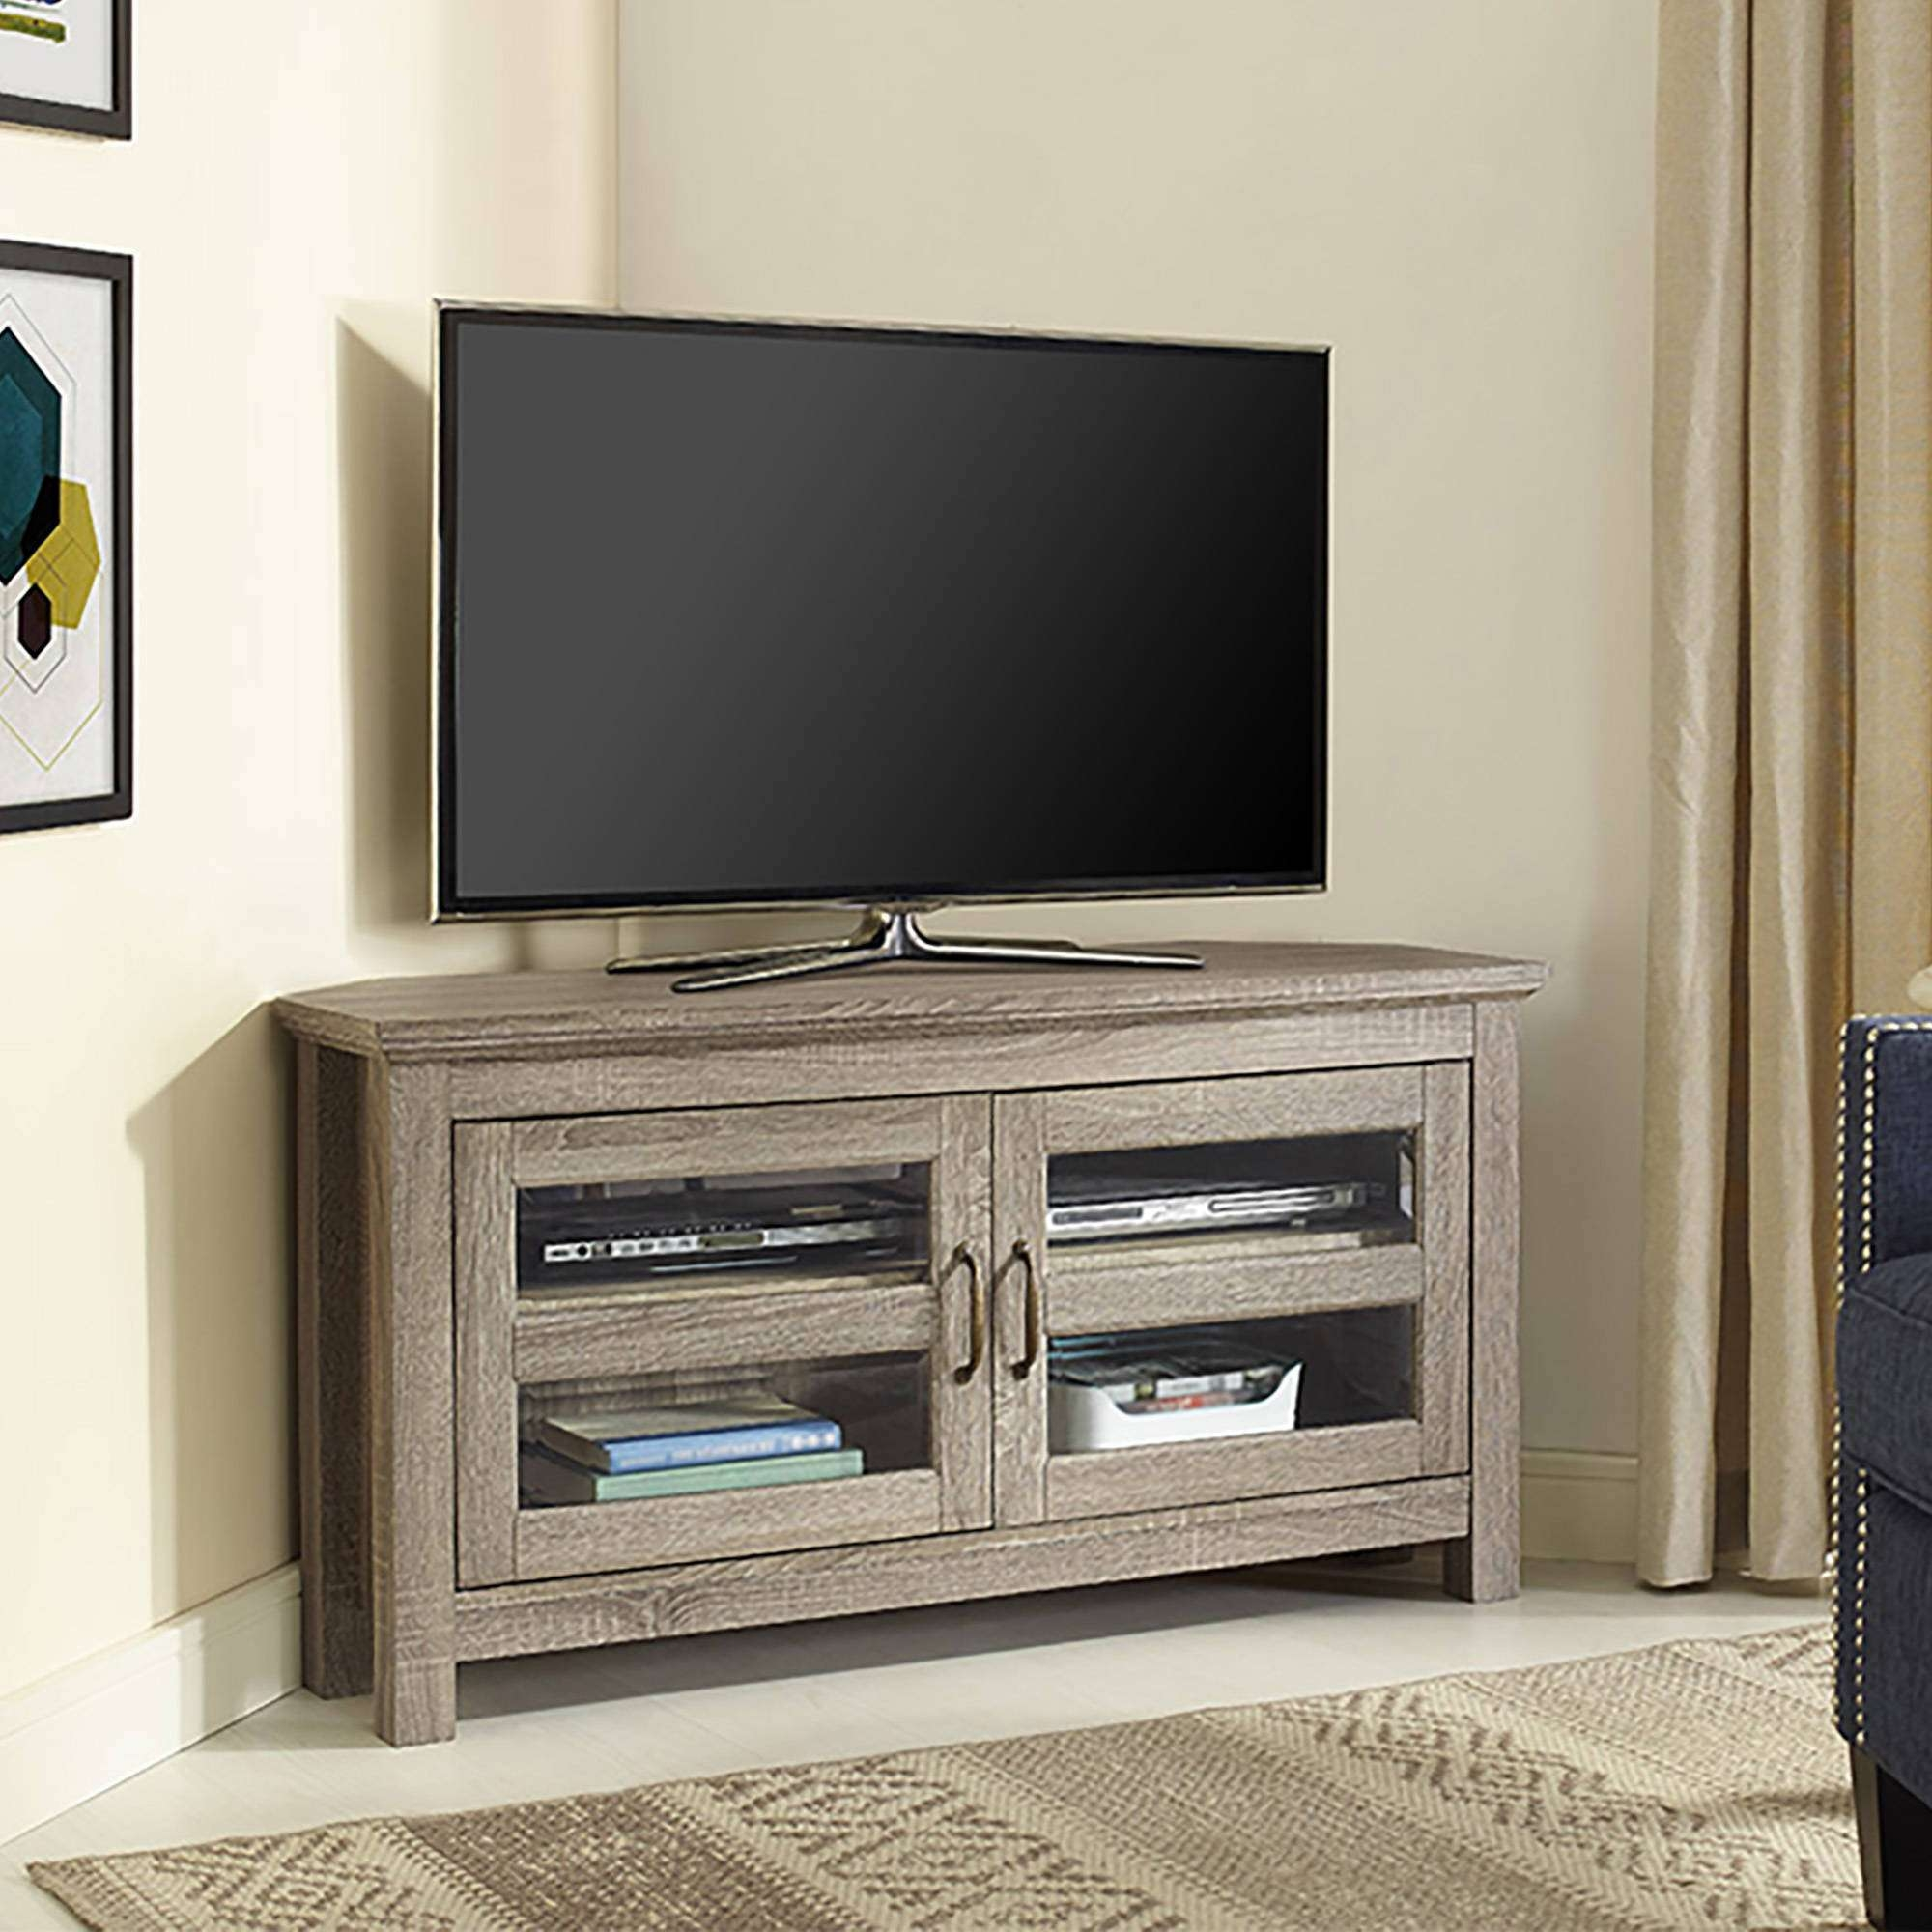 Fancy Walker Edison Corner Tv Stand 64 On Home Designing Regarding Corner Tv Stands (View 6 of 15)